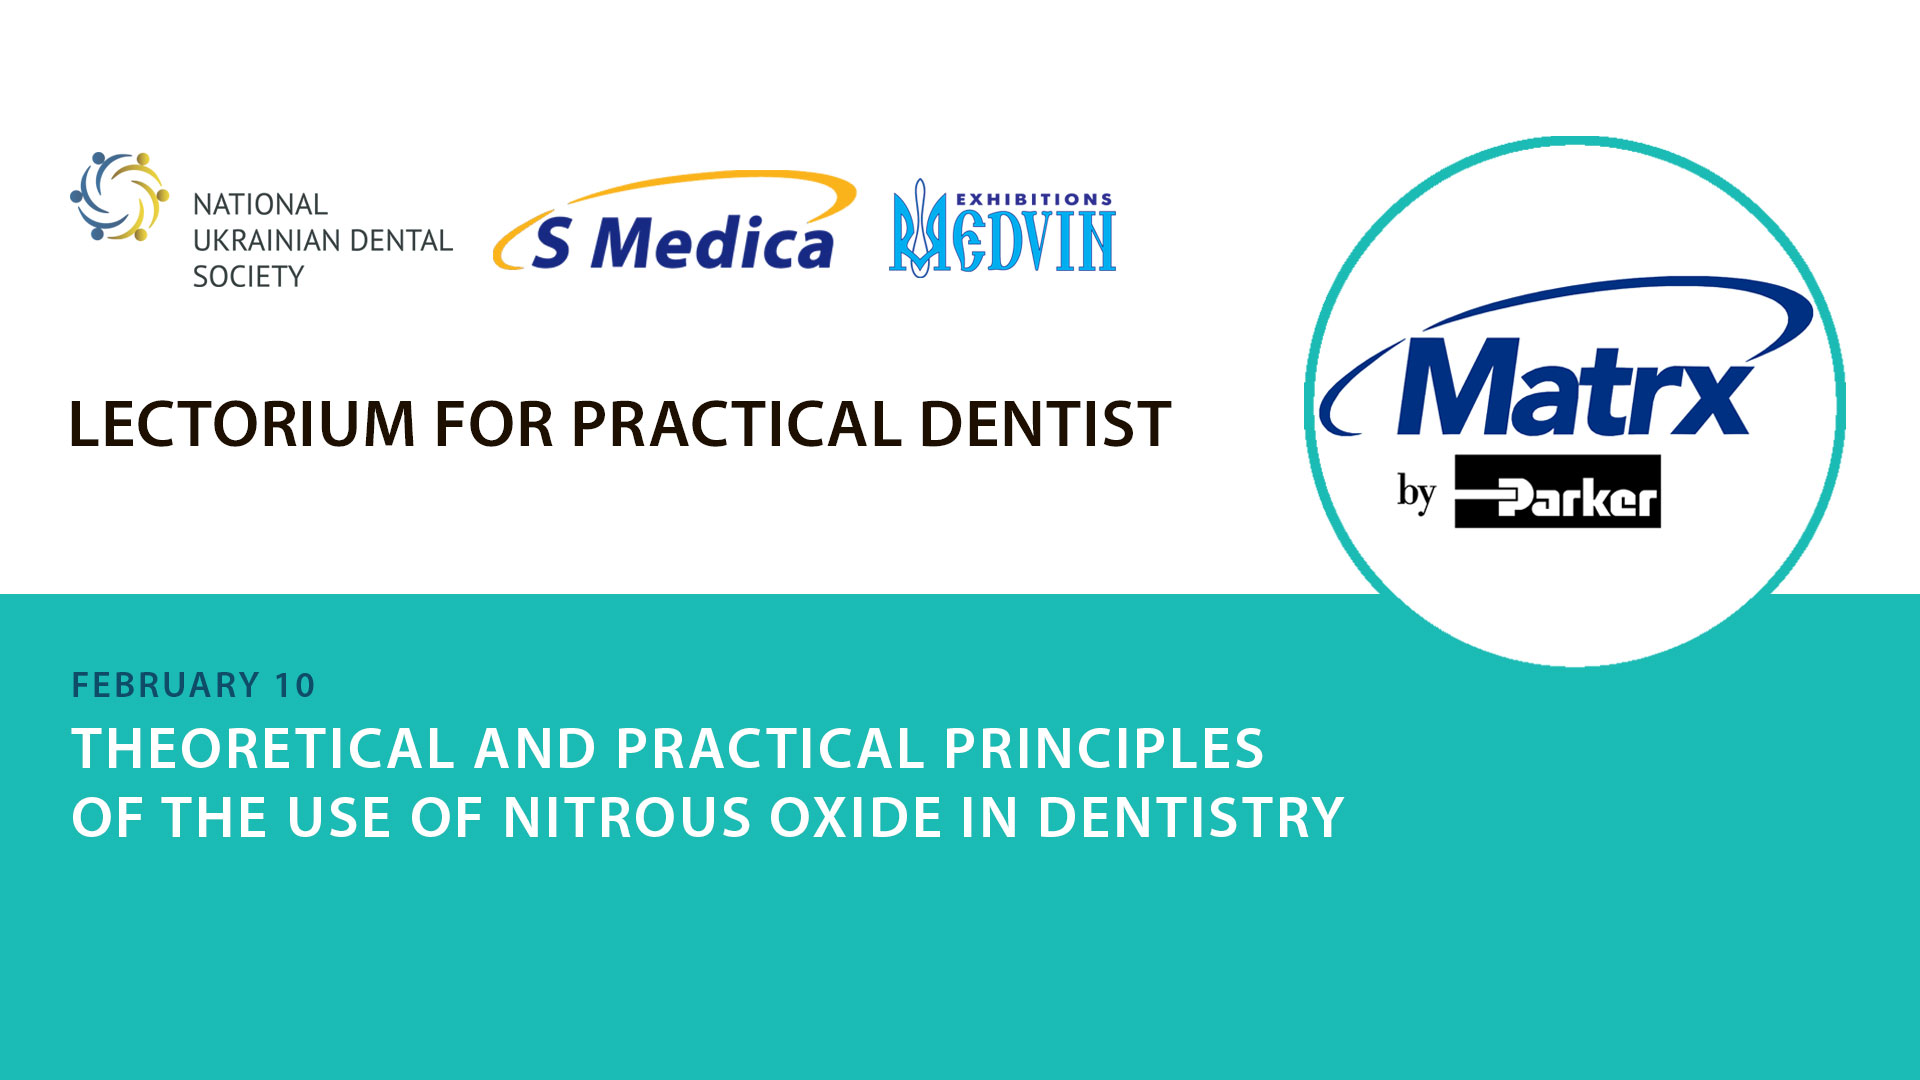 Theoretical and practical principles of the use of nitrous oxide in dentistry